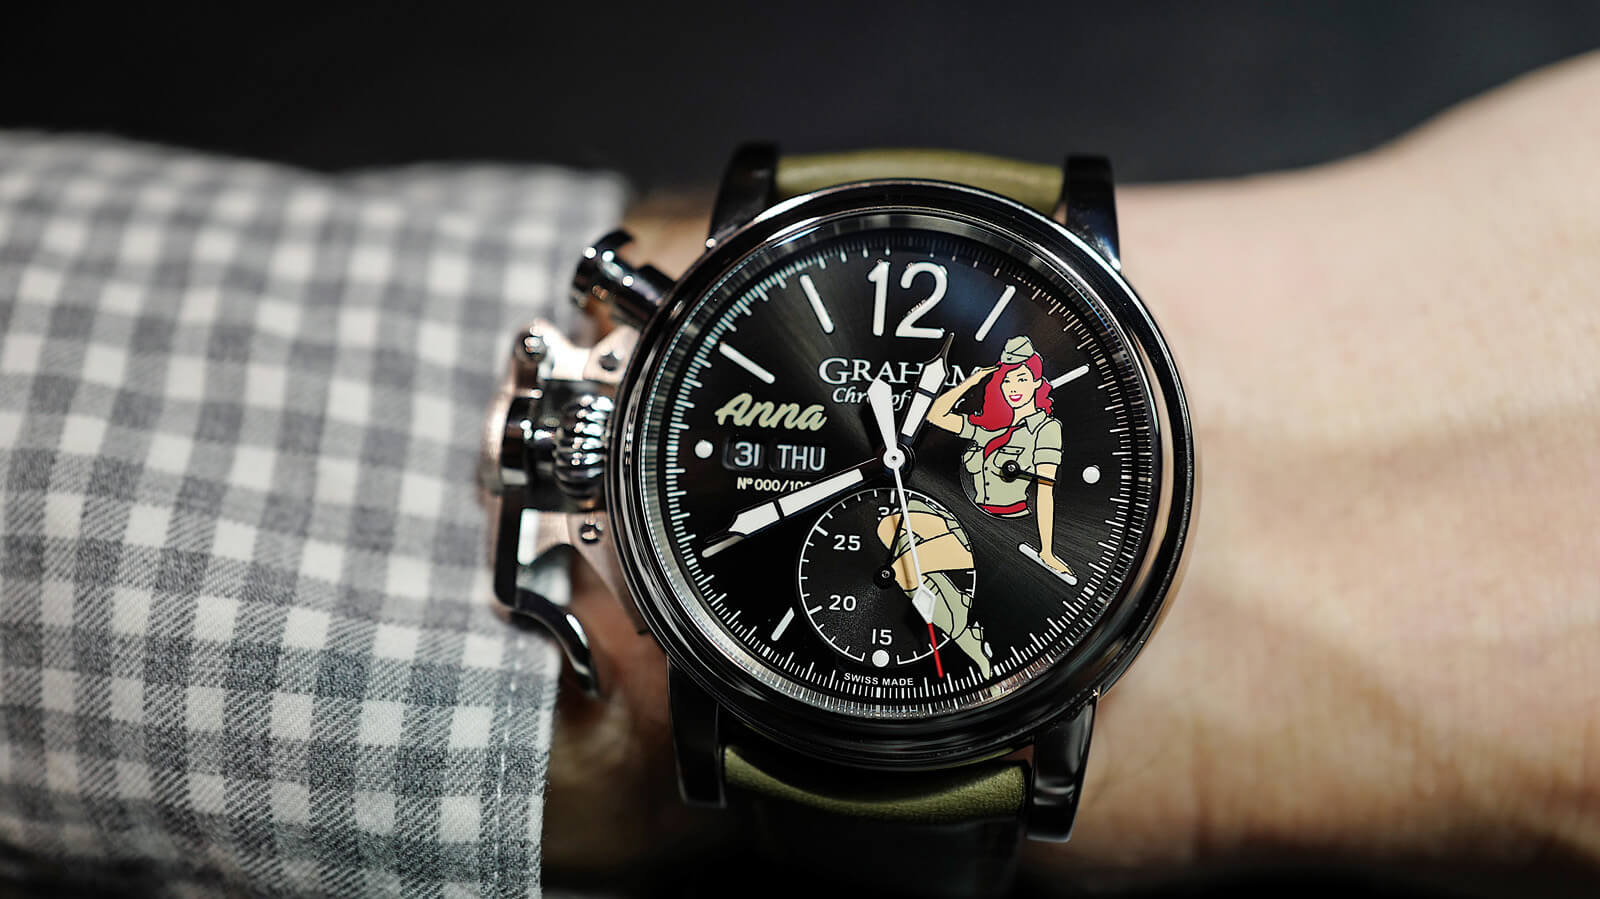 target wrist chronofighter graham watch ablogtowatch reviews watches time oversize review